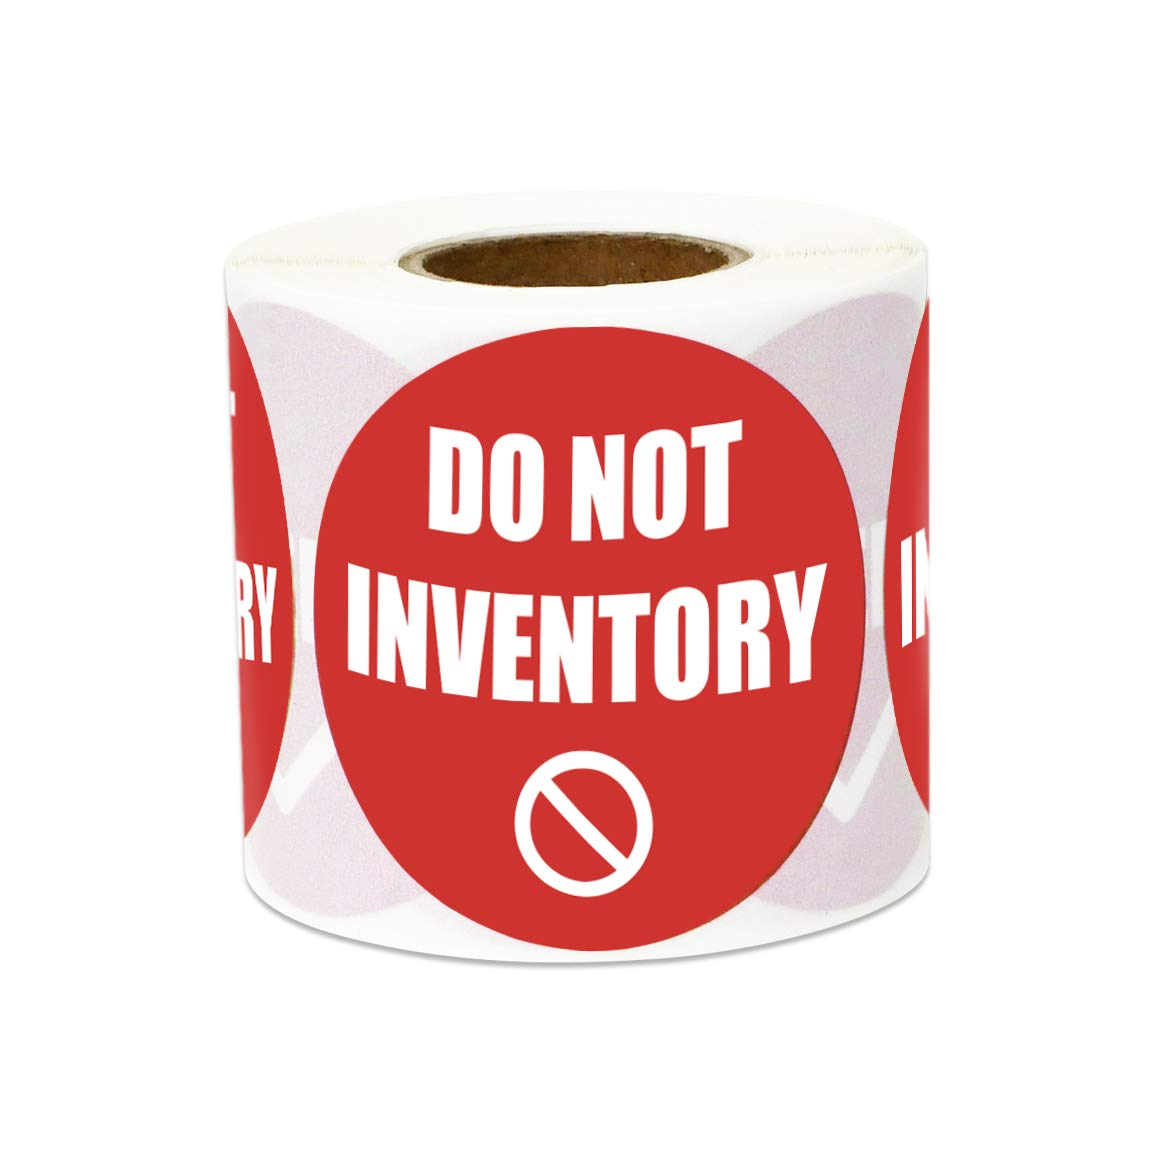 300 Label Per Roll SOJITEK A-TD-OFSSPS738-RED-005 Do Not Inventory Sticker Count Warehouse Label 2 Round Red 5 Rolls